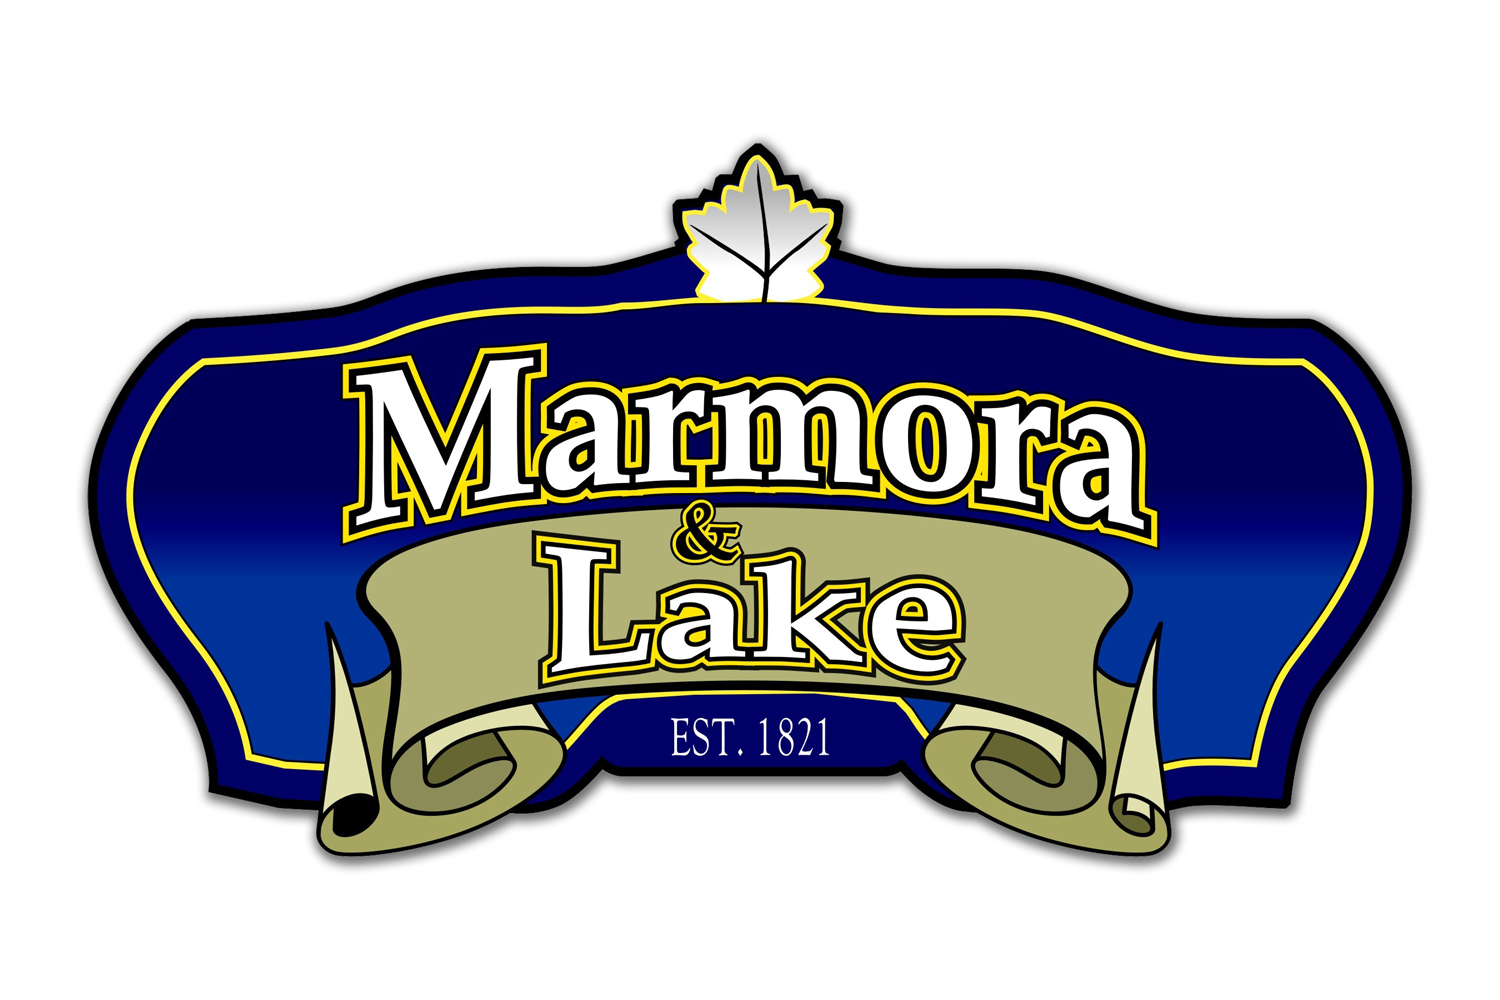 Municipality of Marmora and Lake